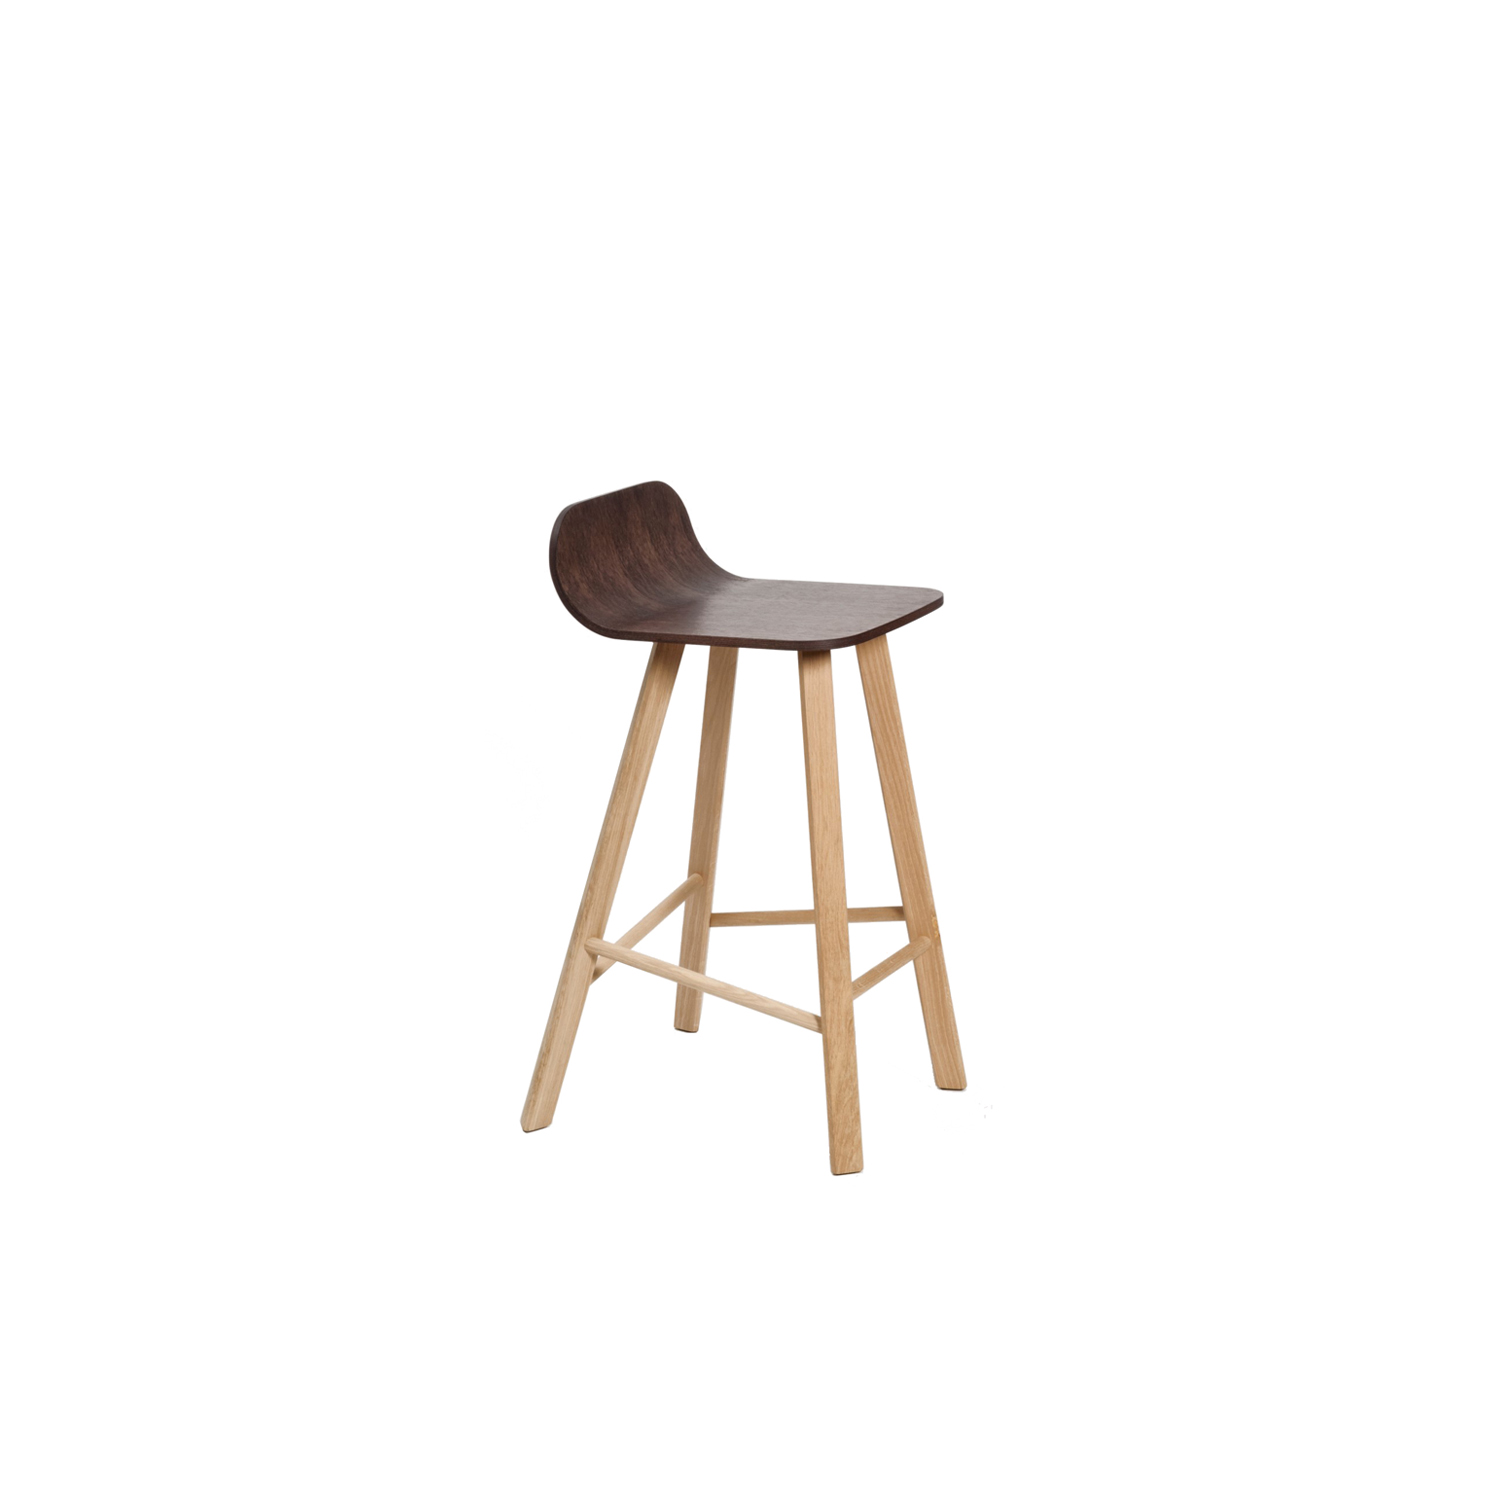 Tria Stool Low Back - Variation on Tria Simple, this stool is suitable both for homes and contract with the 2 version low back LB or high back HB. Bent plywood shell, available in 3 different variations with a range of fabics, leather and paint options.